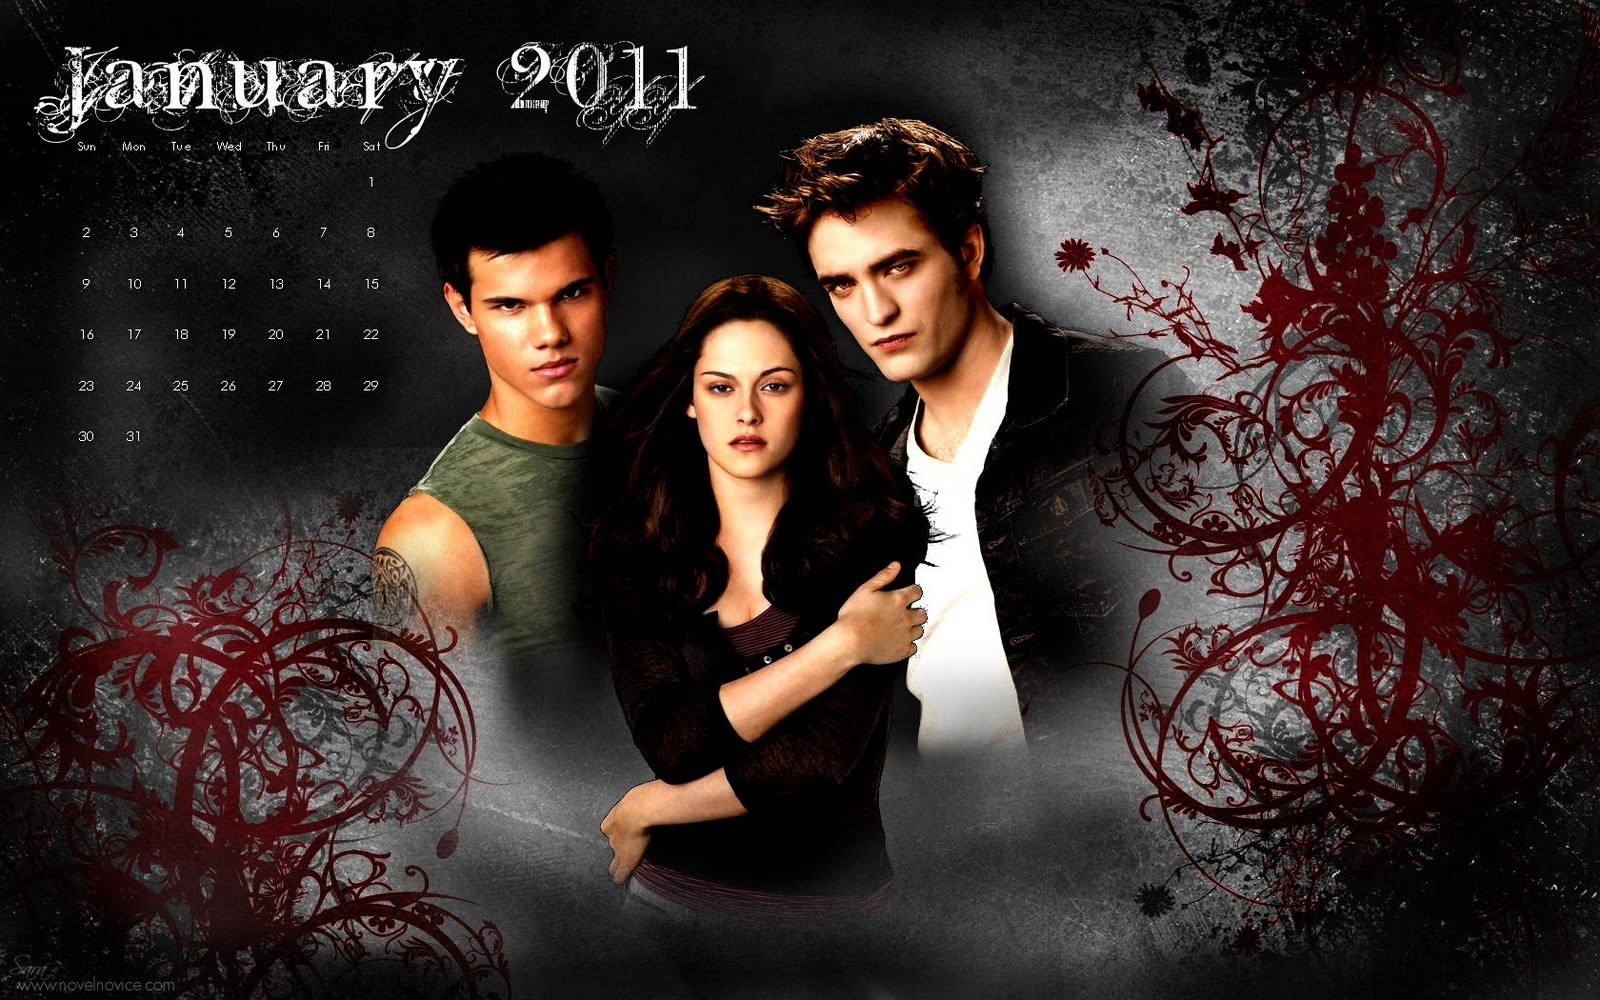 twilight saga wallpaper - sf wallpaper